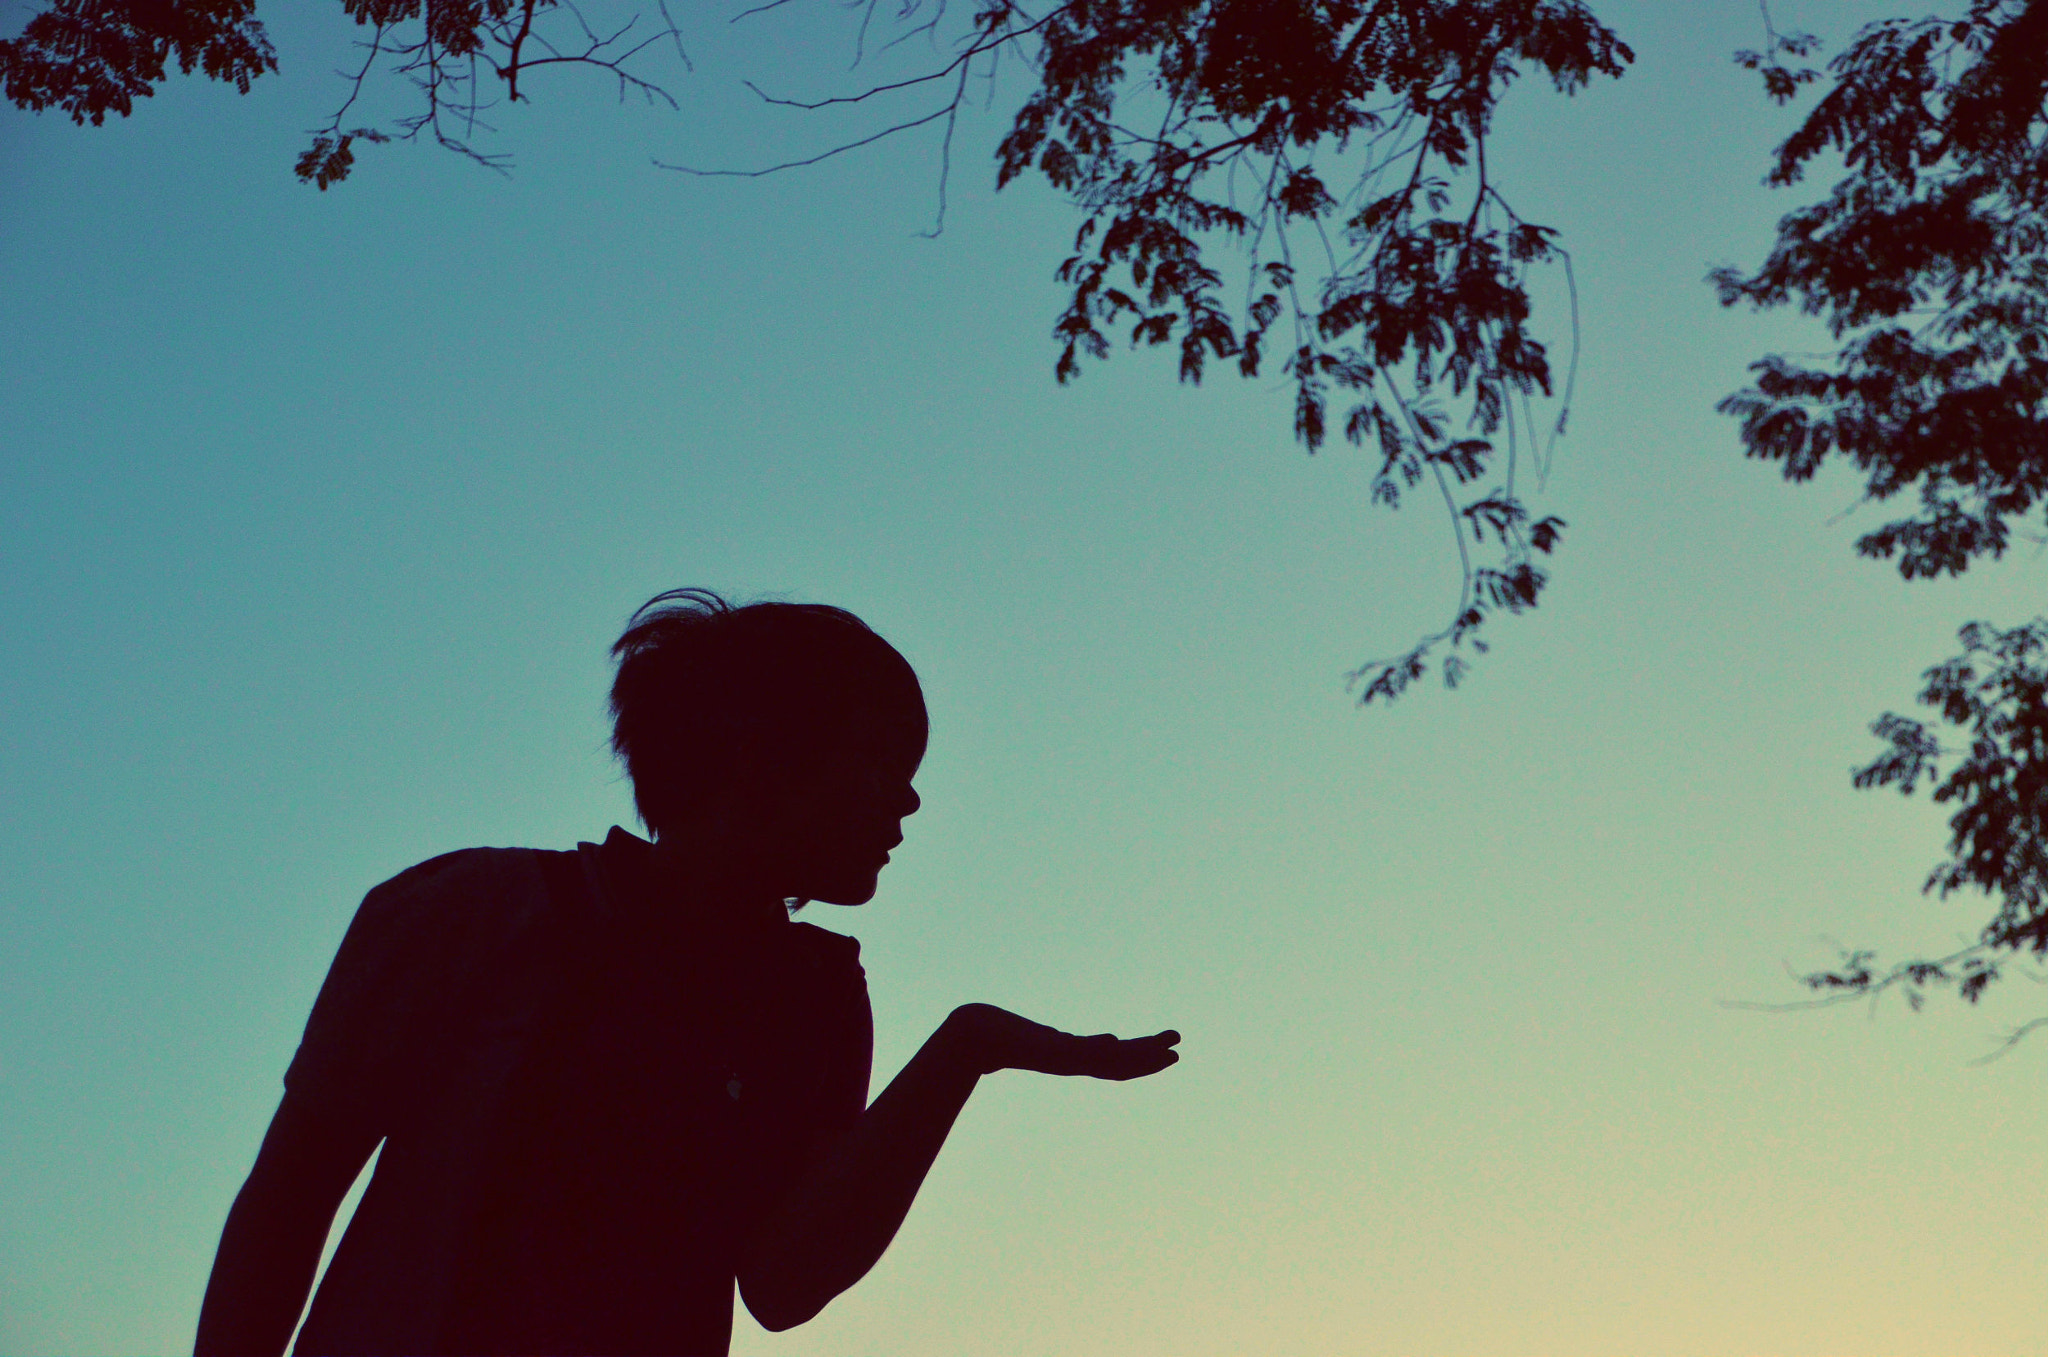 Photograph Silhouette by Elora Ghea on 500px